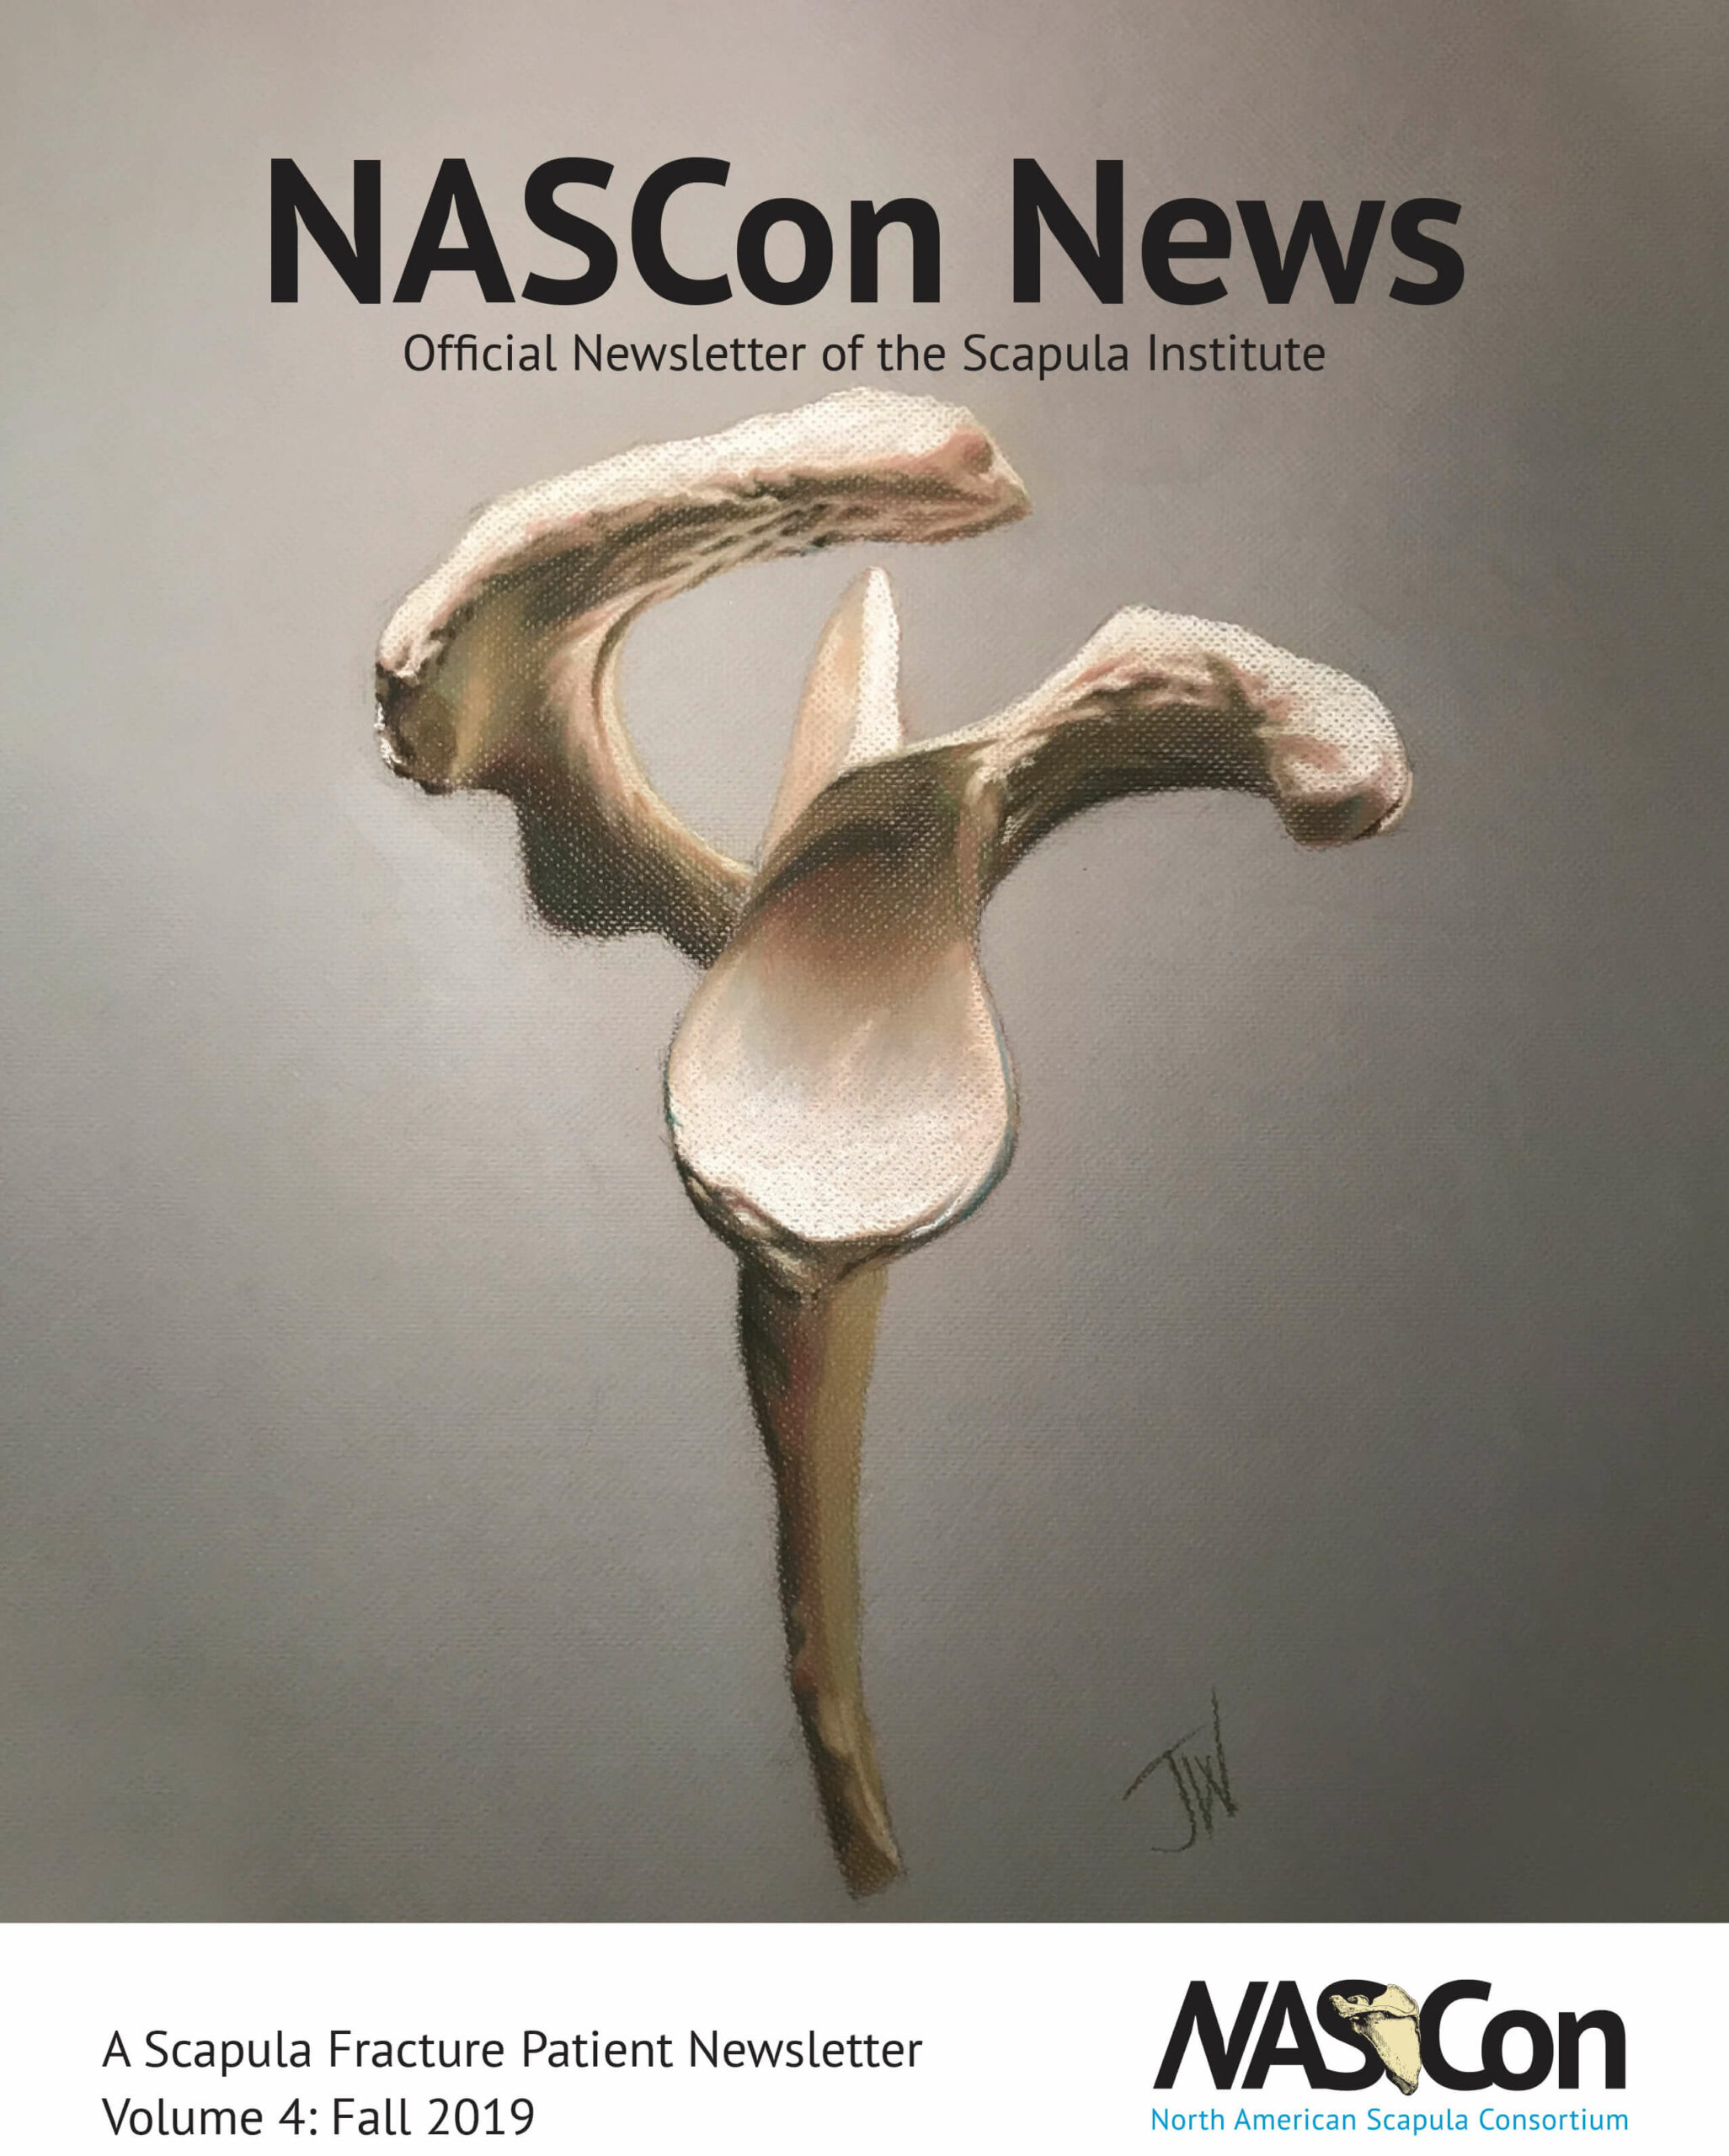 A Scapula Fracture Patient Newsletter Volume 3: Spring 2019